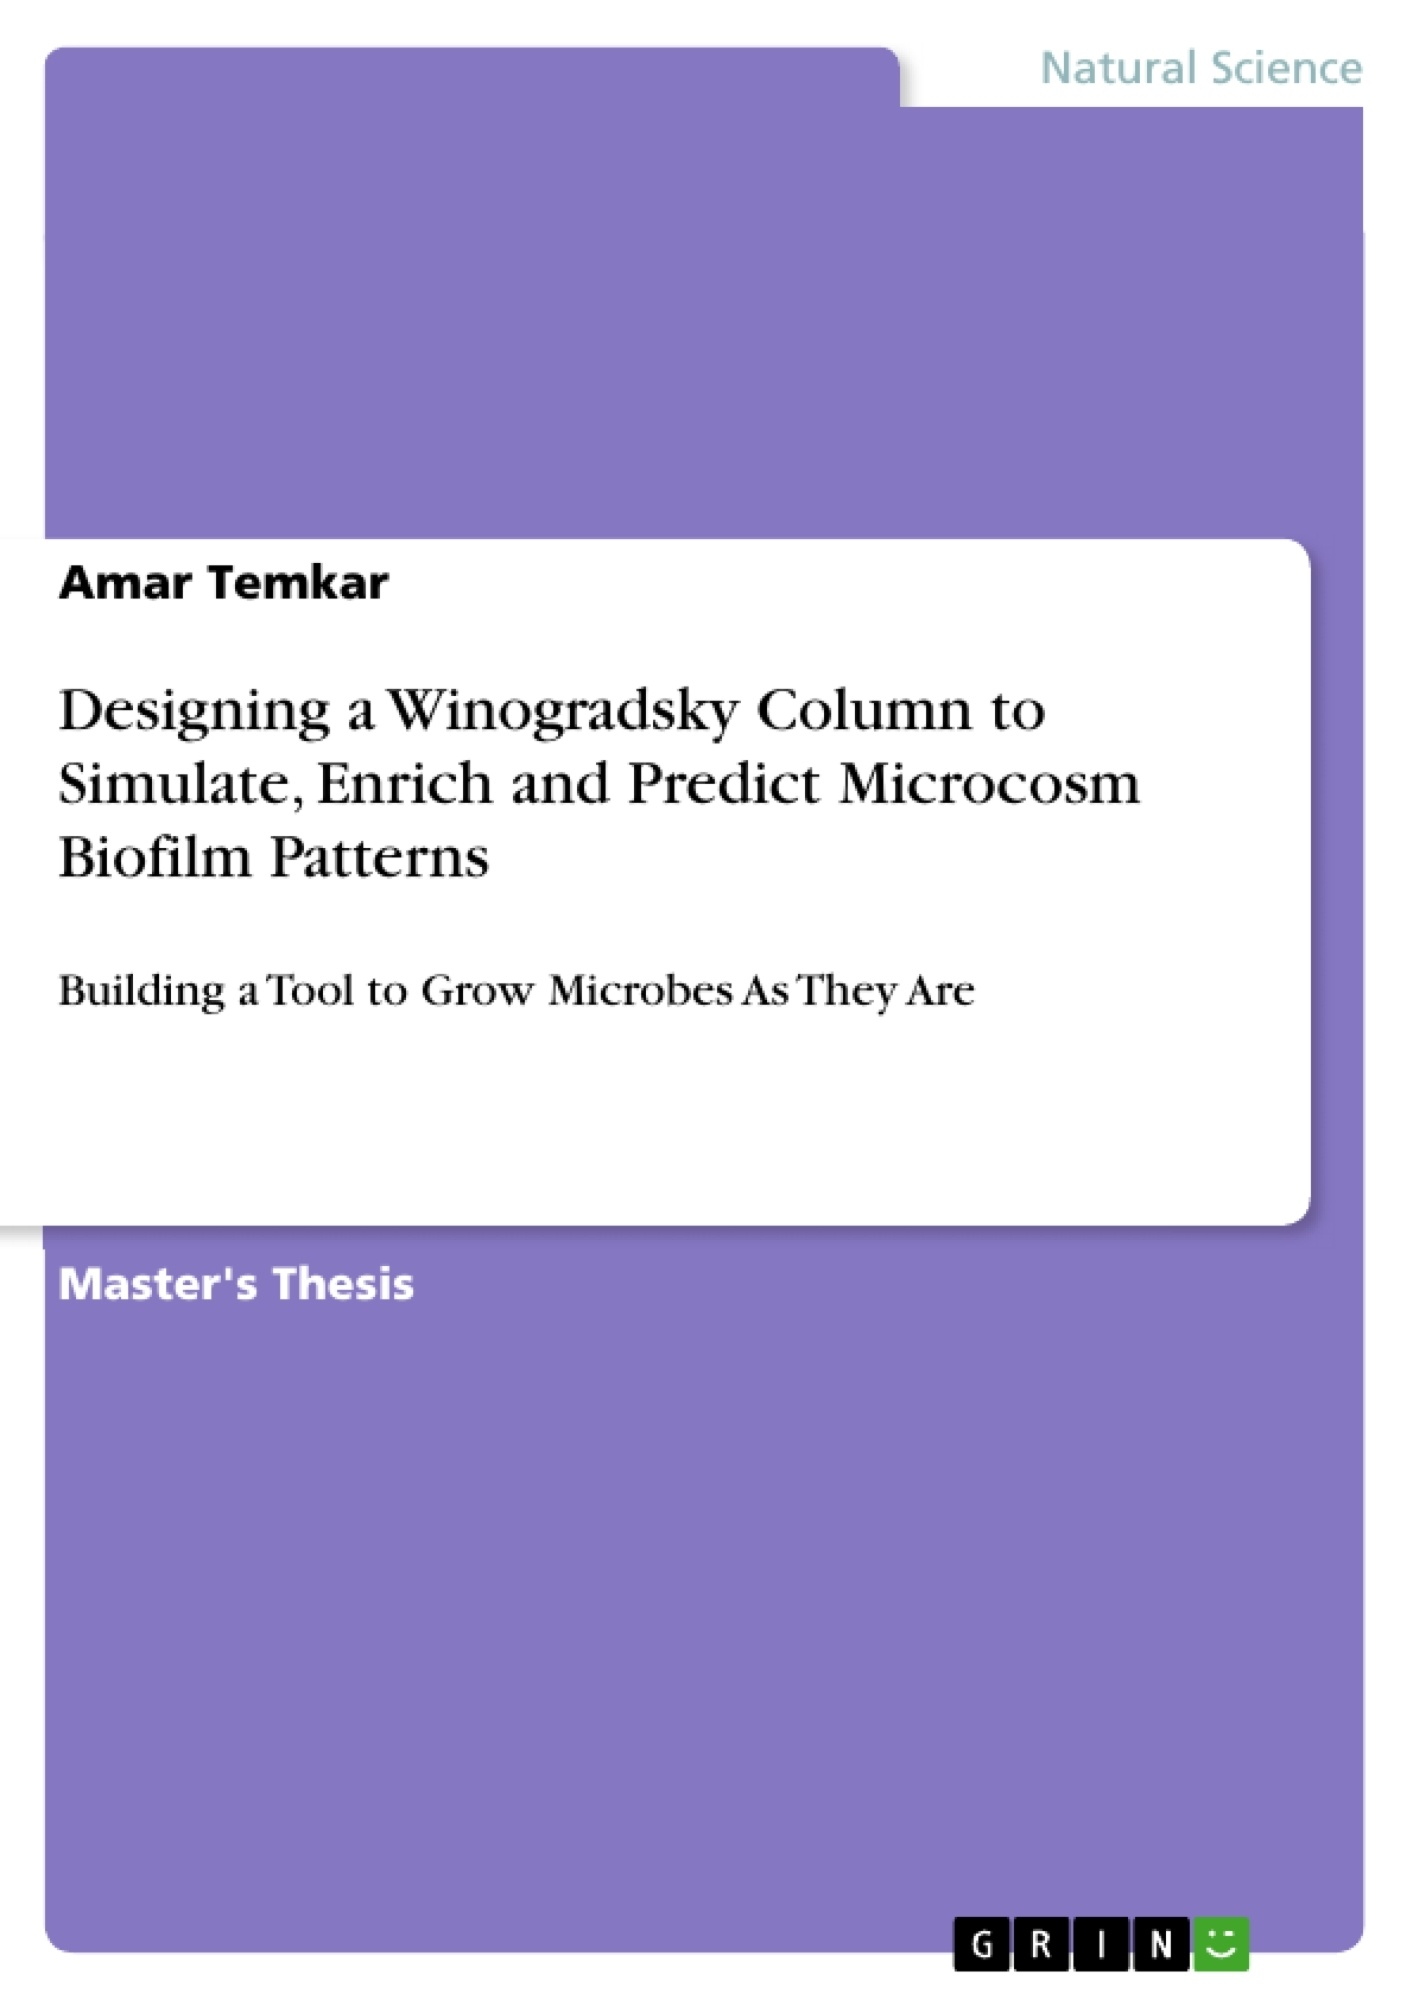 Title: Designing a Winogradsky Column to Simulate, Enrich and Predict Microcosm Biofilm Patterns